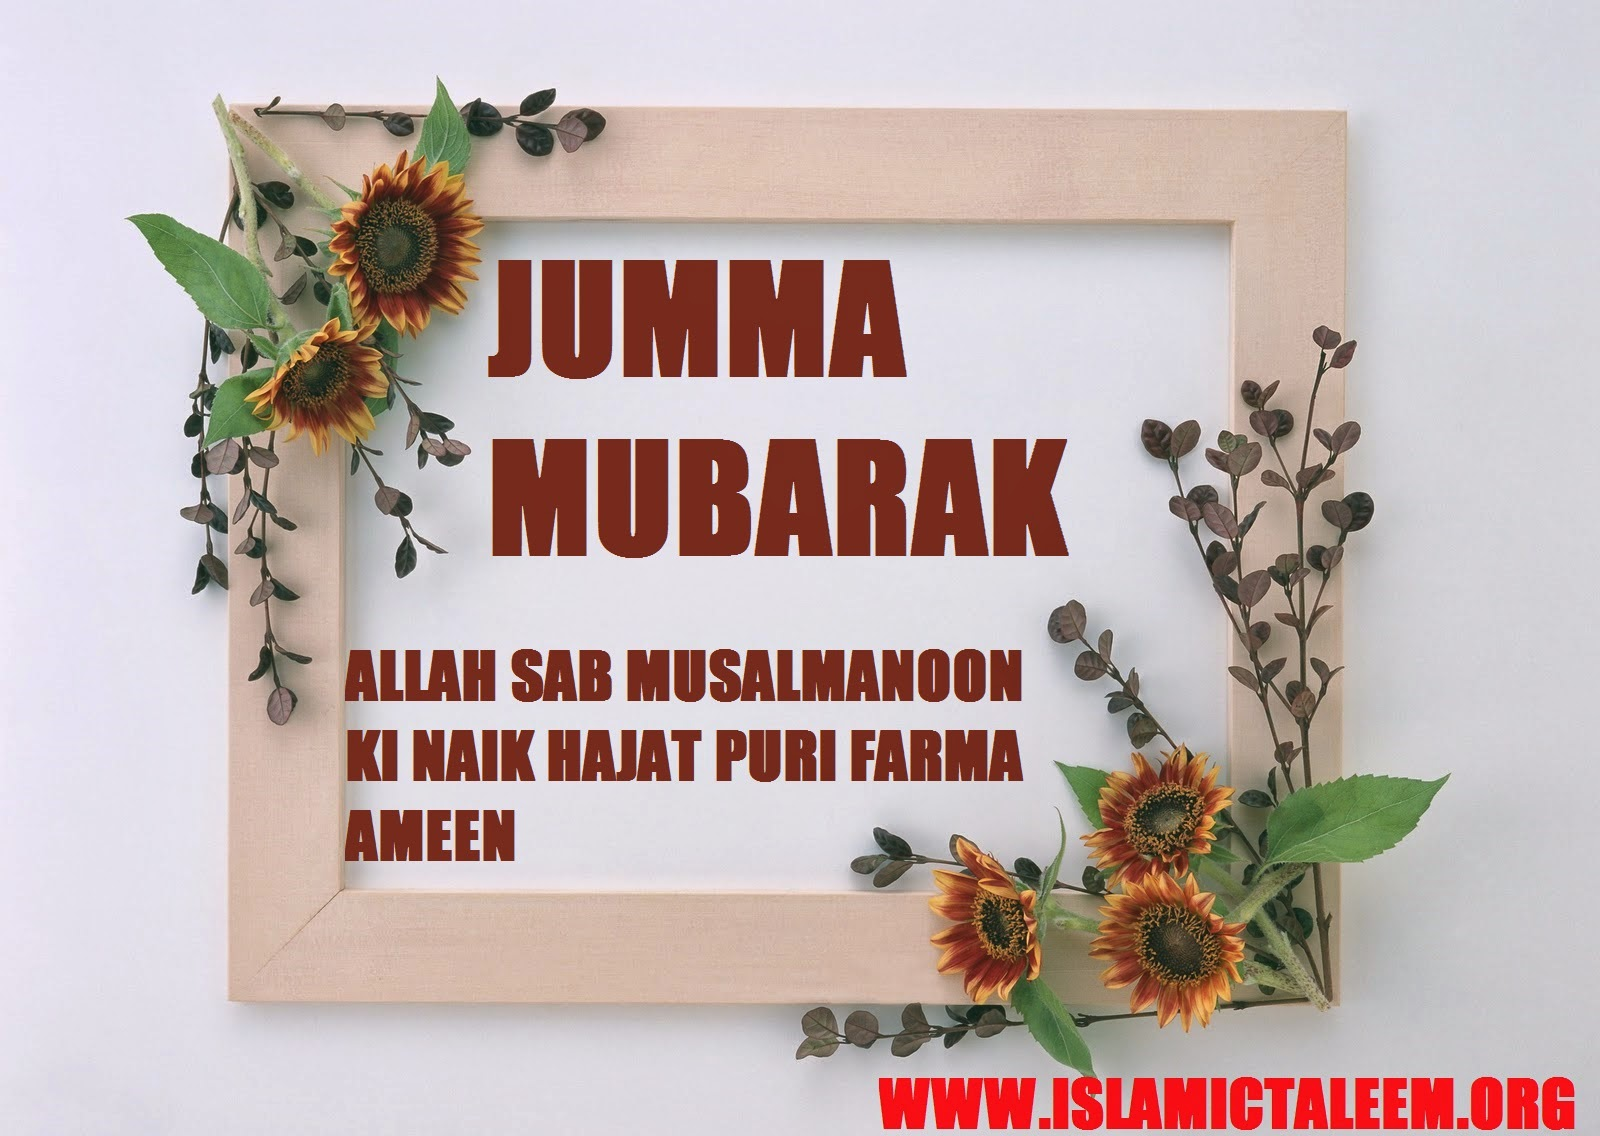 Jumma Mubarak Wallpaper Voice Of Youth